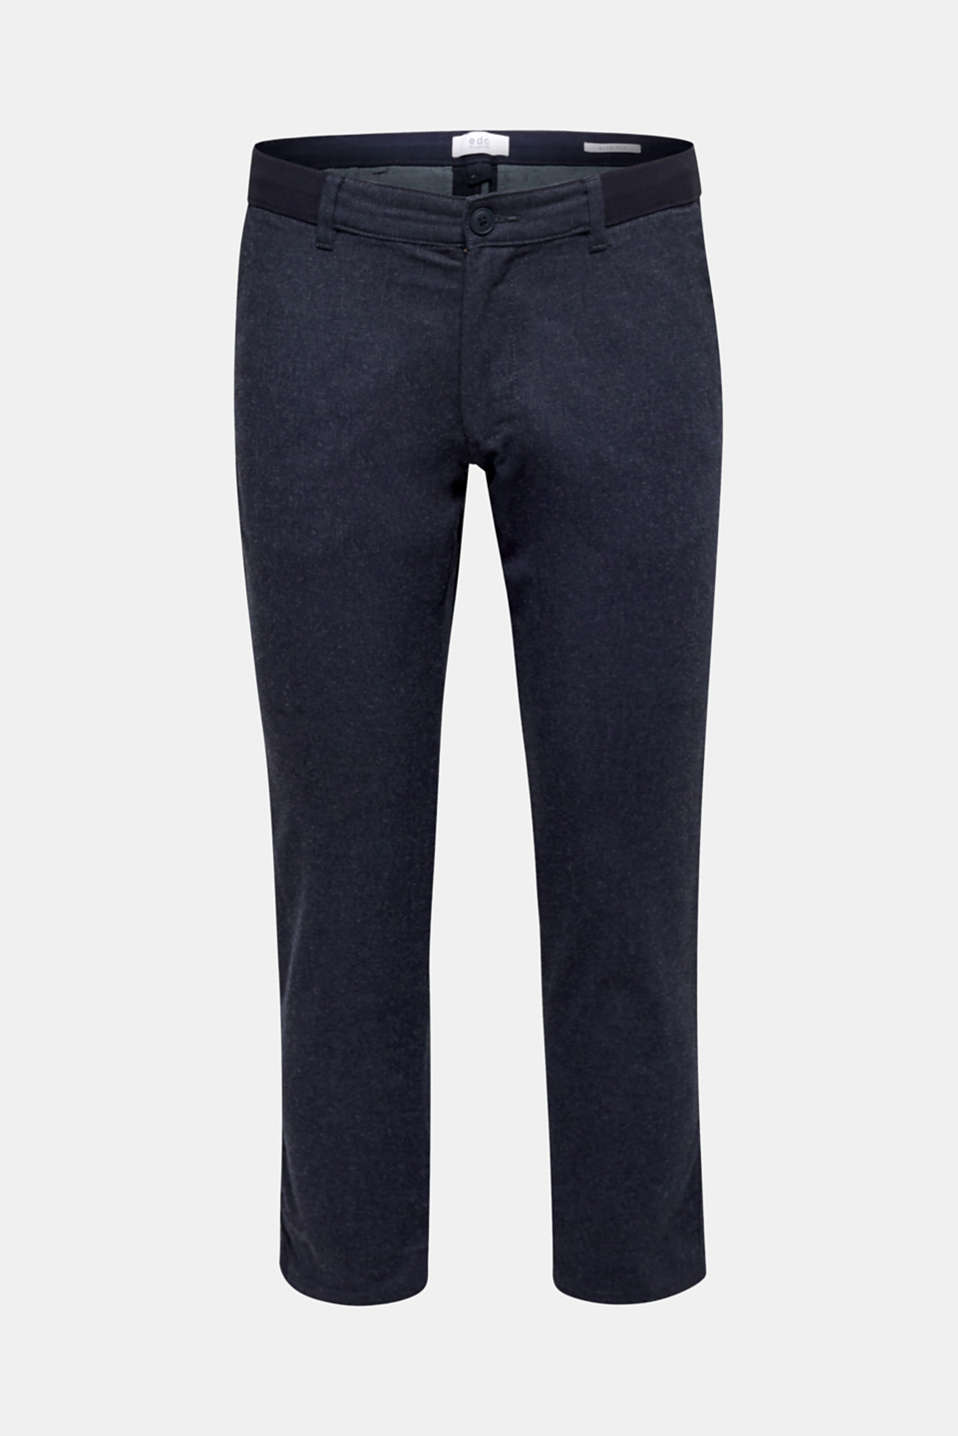 Cropped trousers with a drawstring waistband, NAVY, detail image number 6